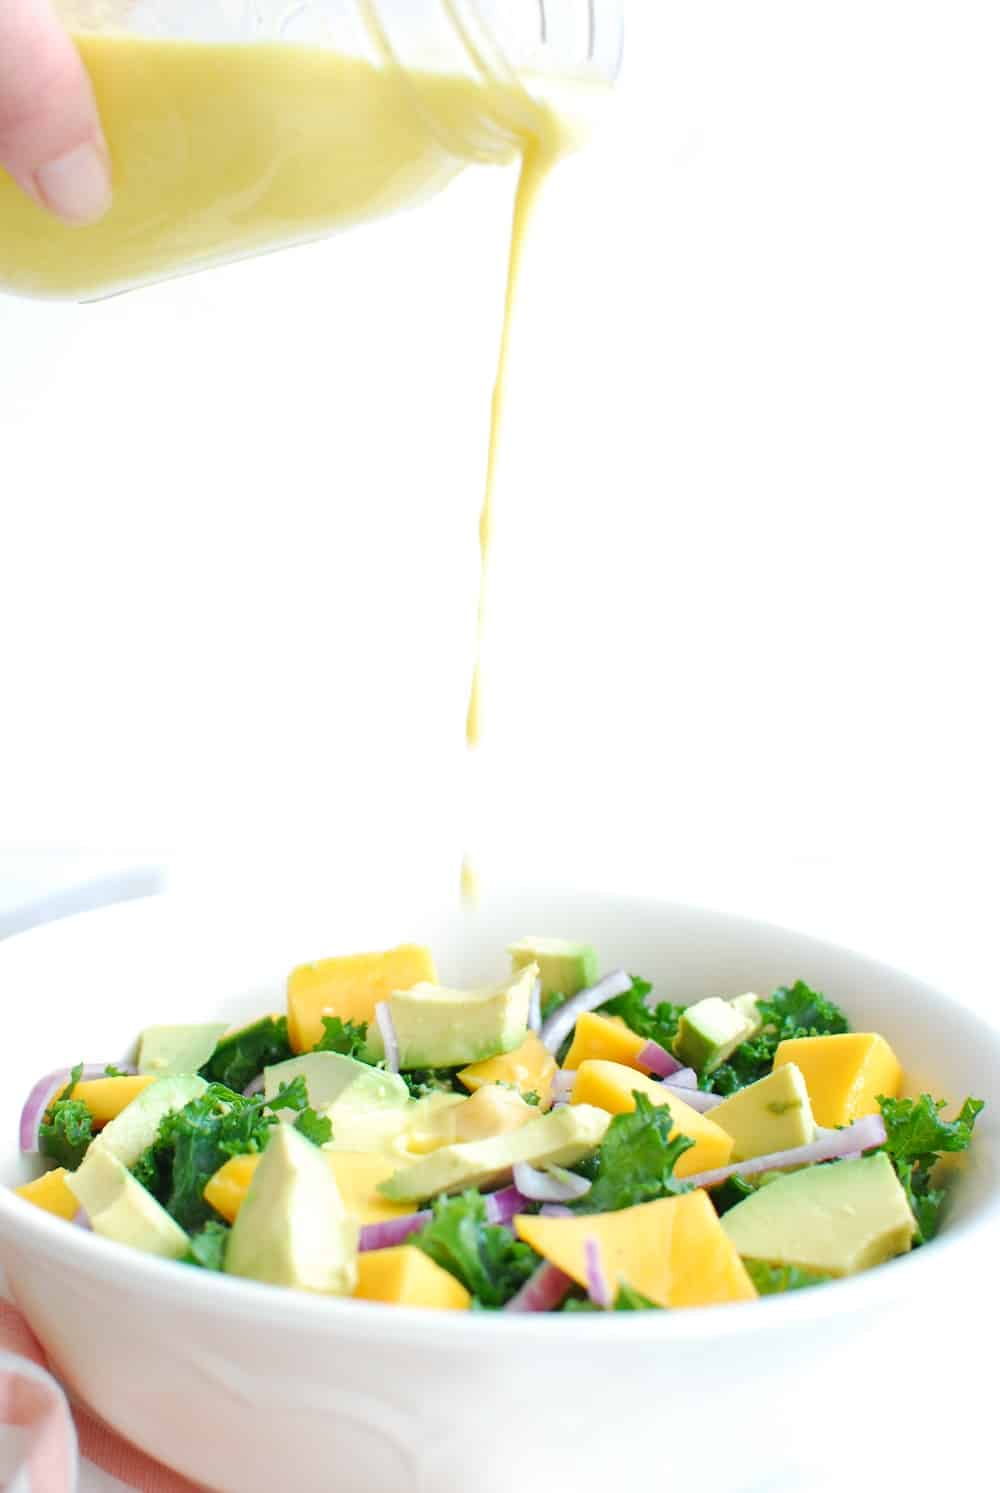 Someone drizzling mango dressing into a bowl of salad